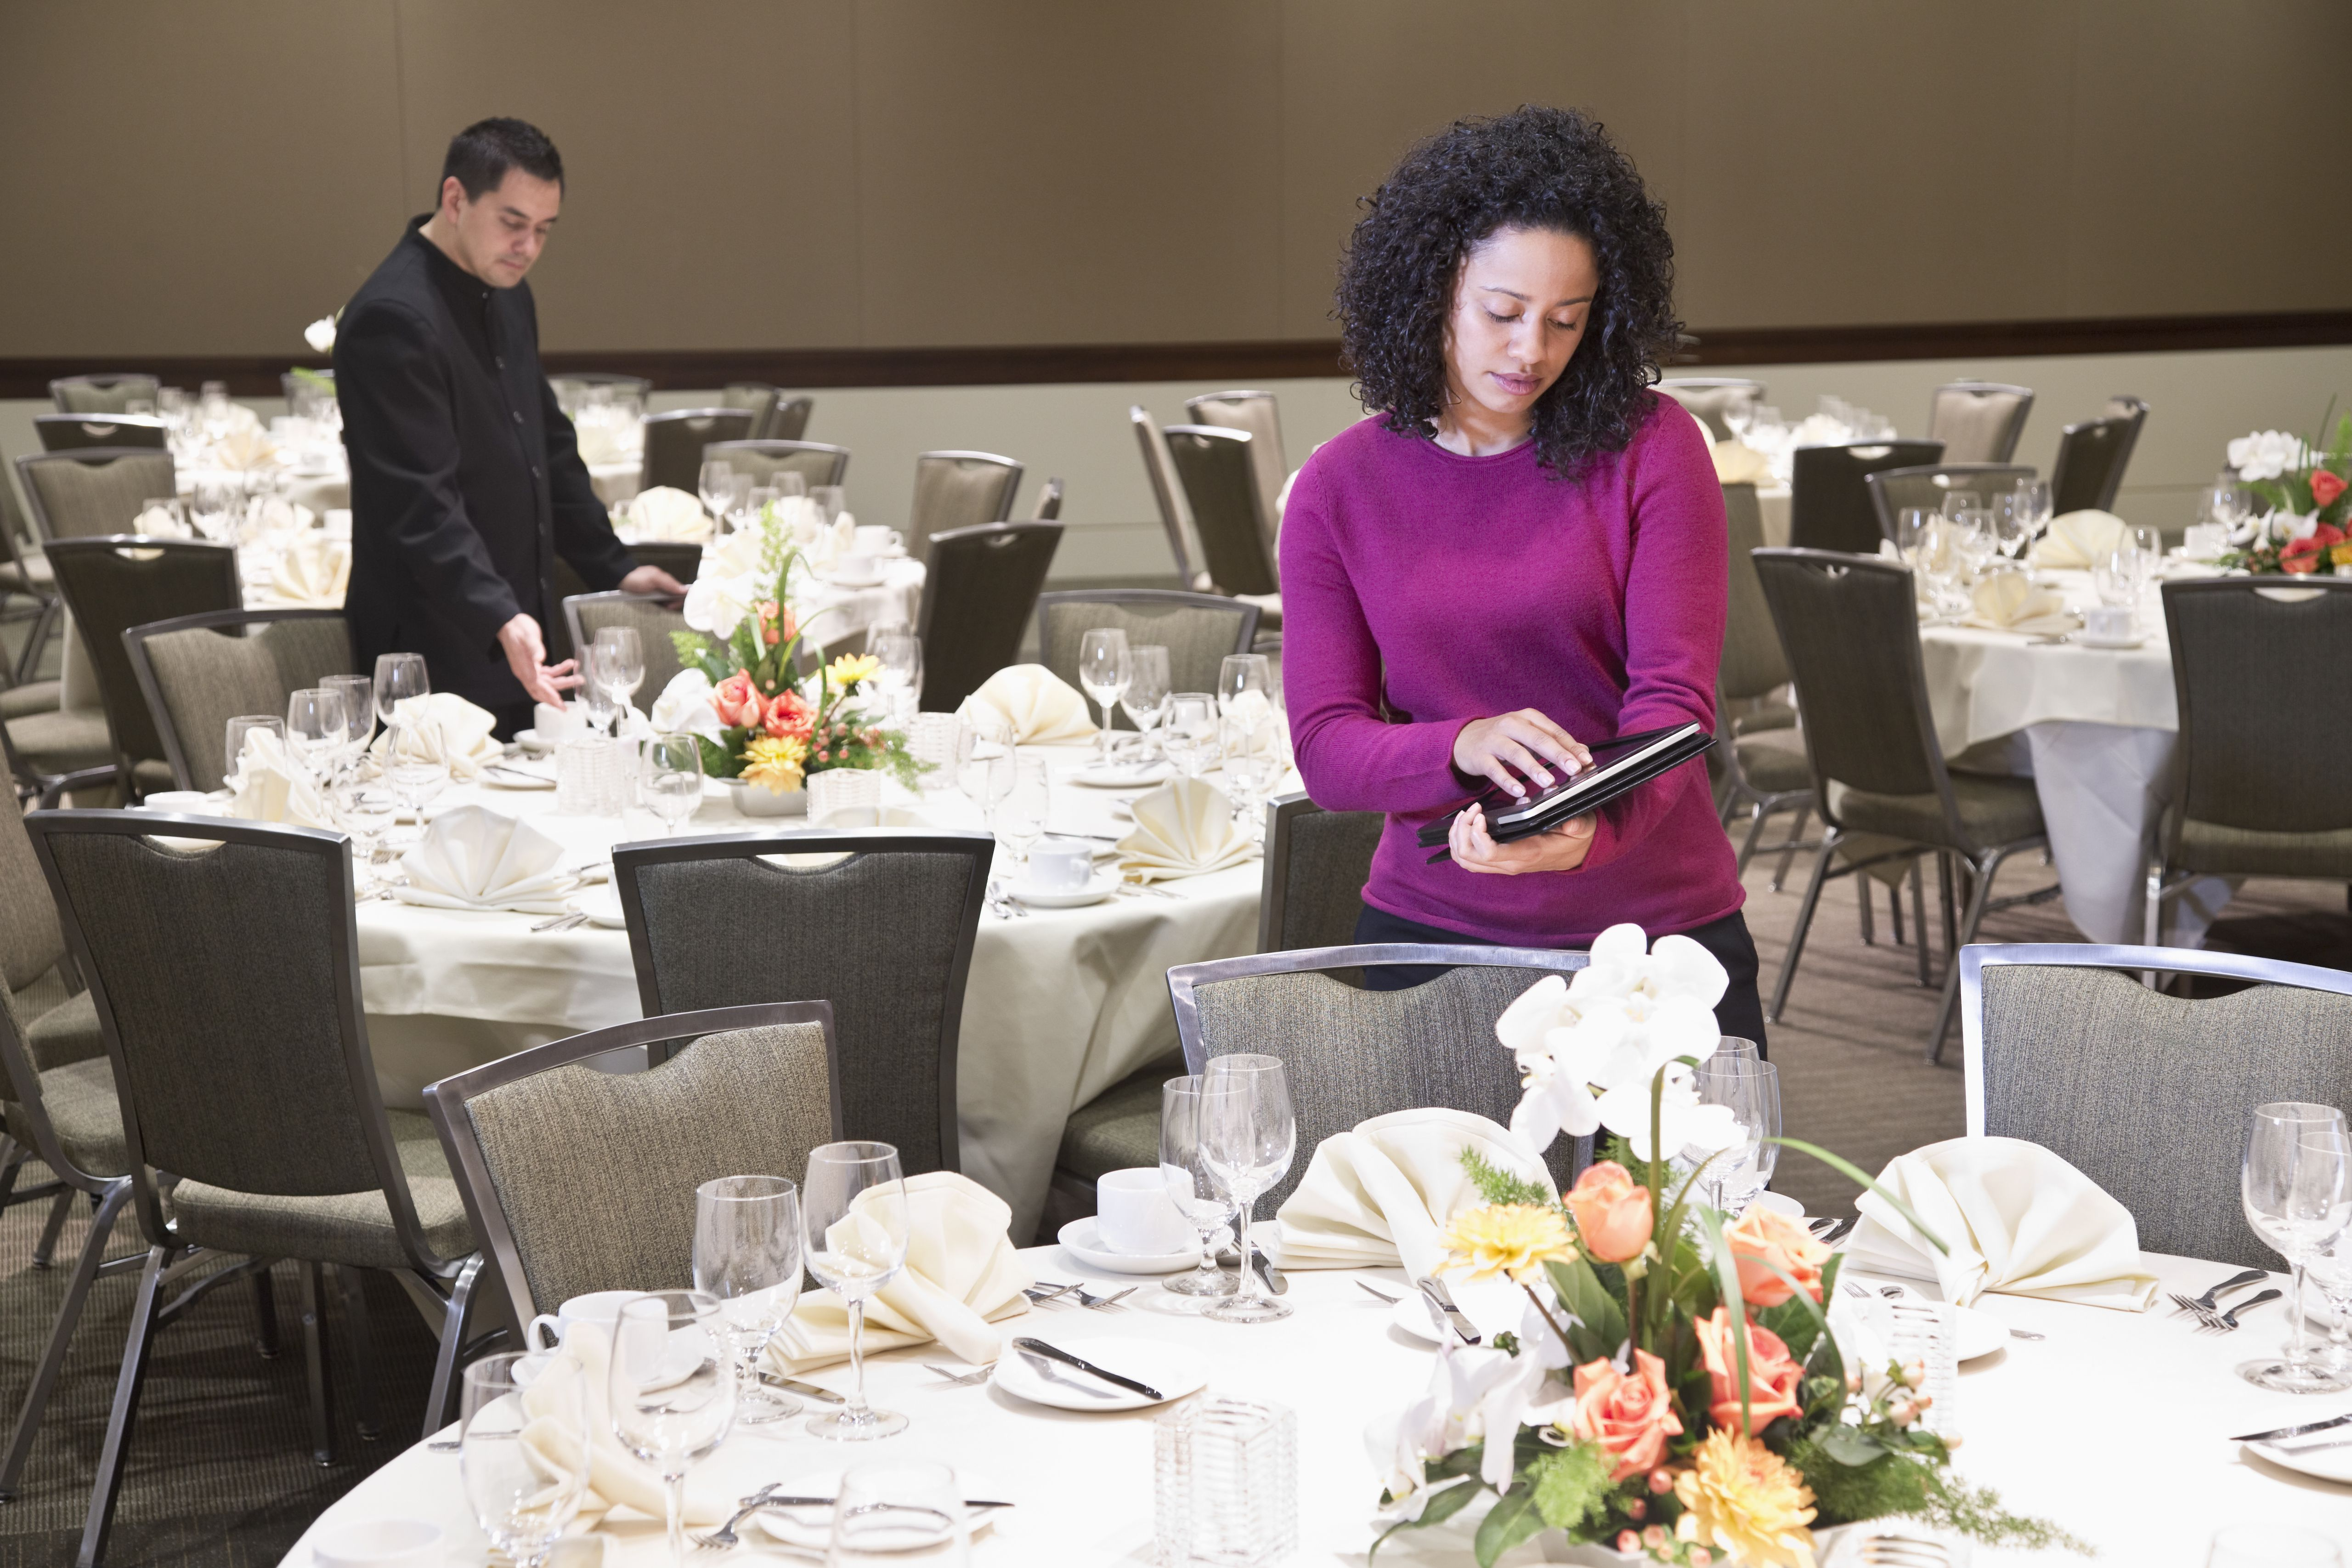 Best Wedding Planner: Tips For Hiring The Best Event Planner Or Producer